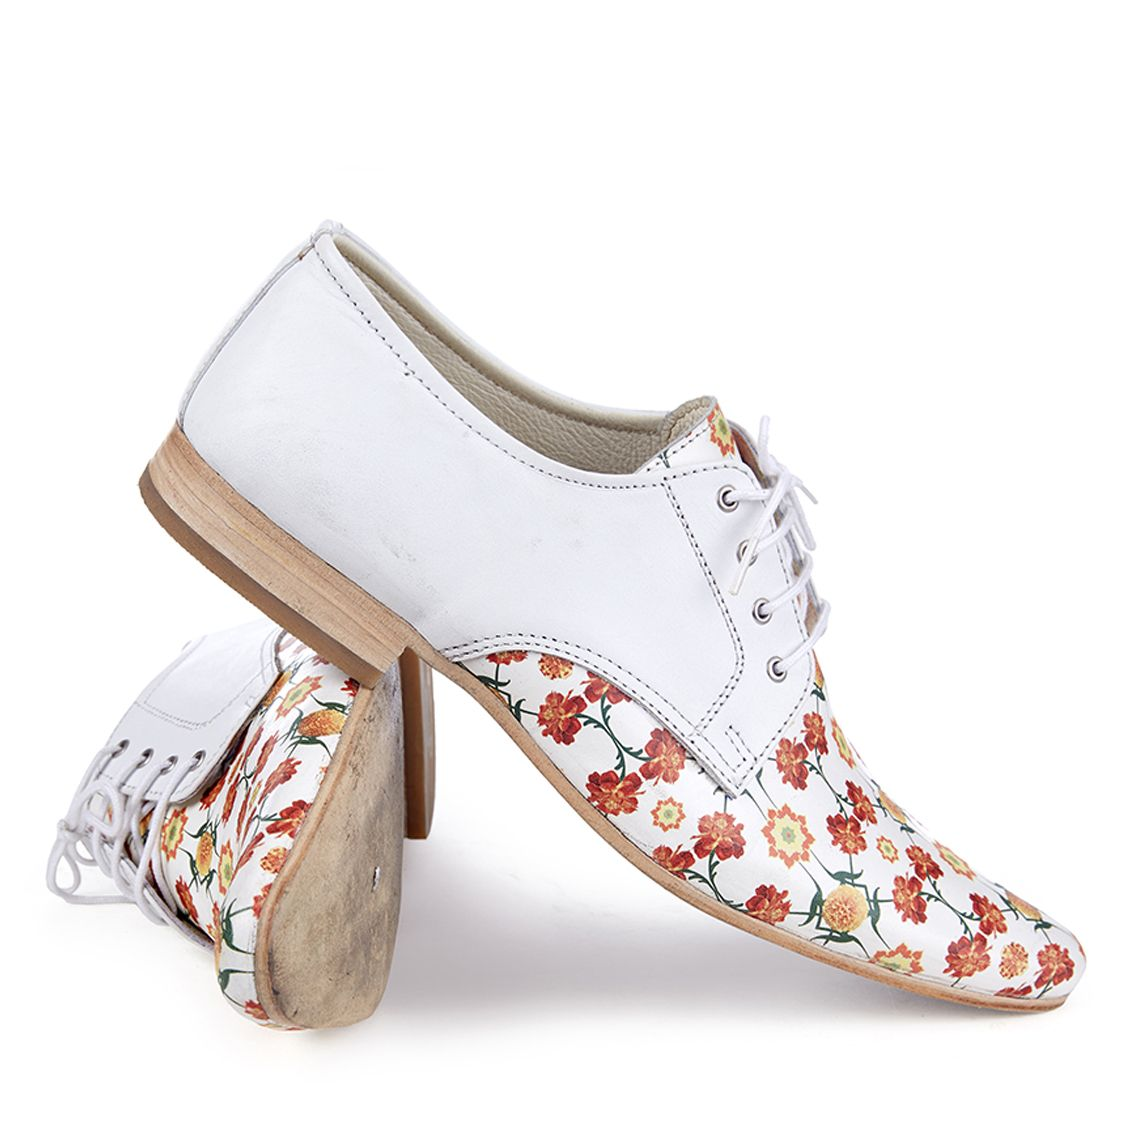 Vyom Handcrafted Printed Shoes